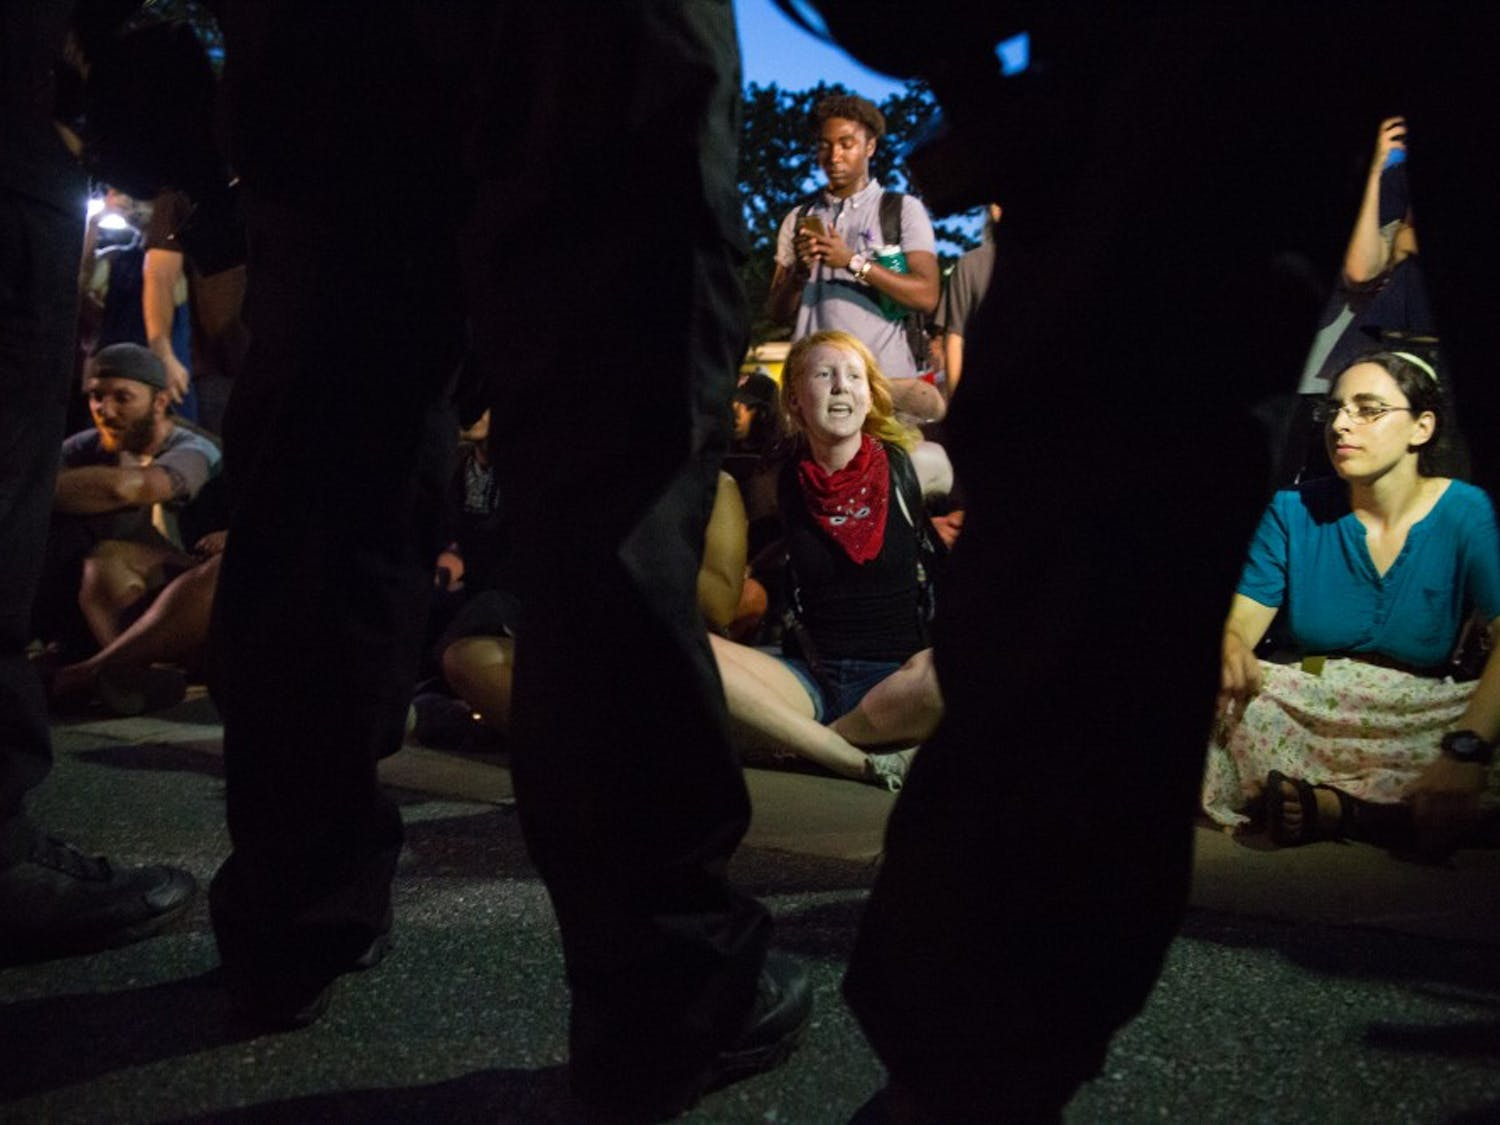 A protest occurred around Silent Sam on the night of the first day of classes.